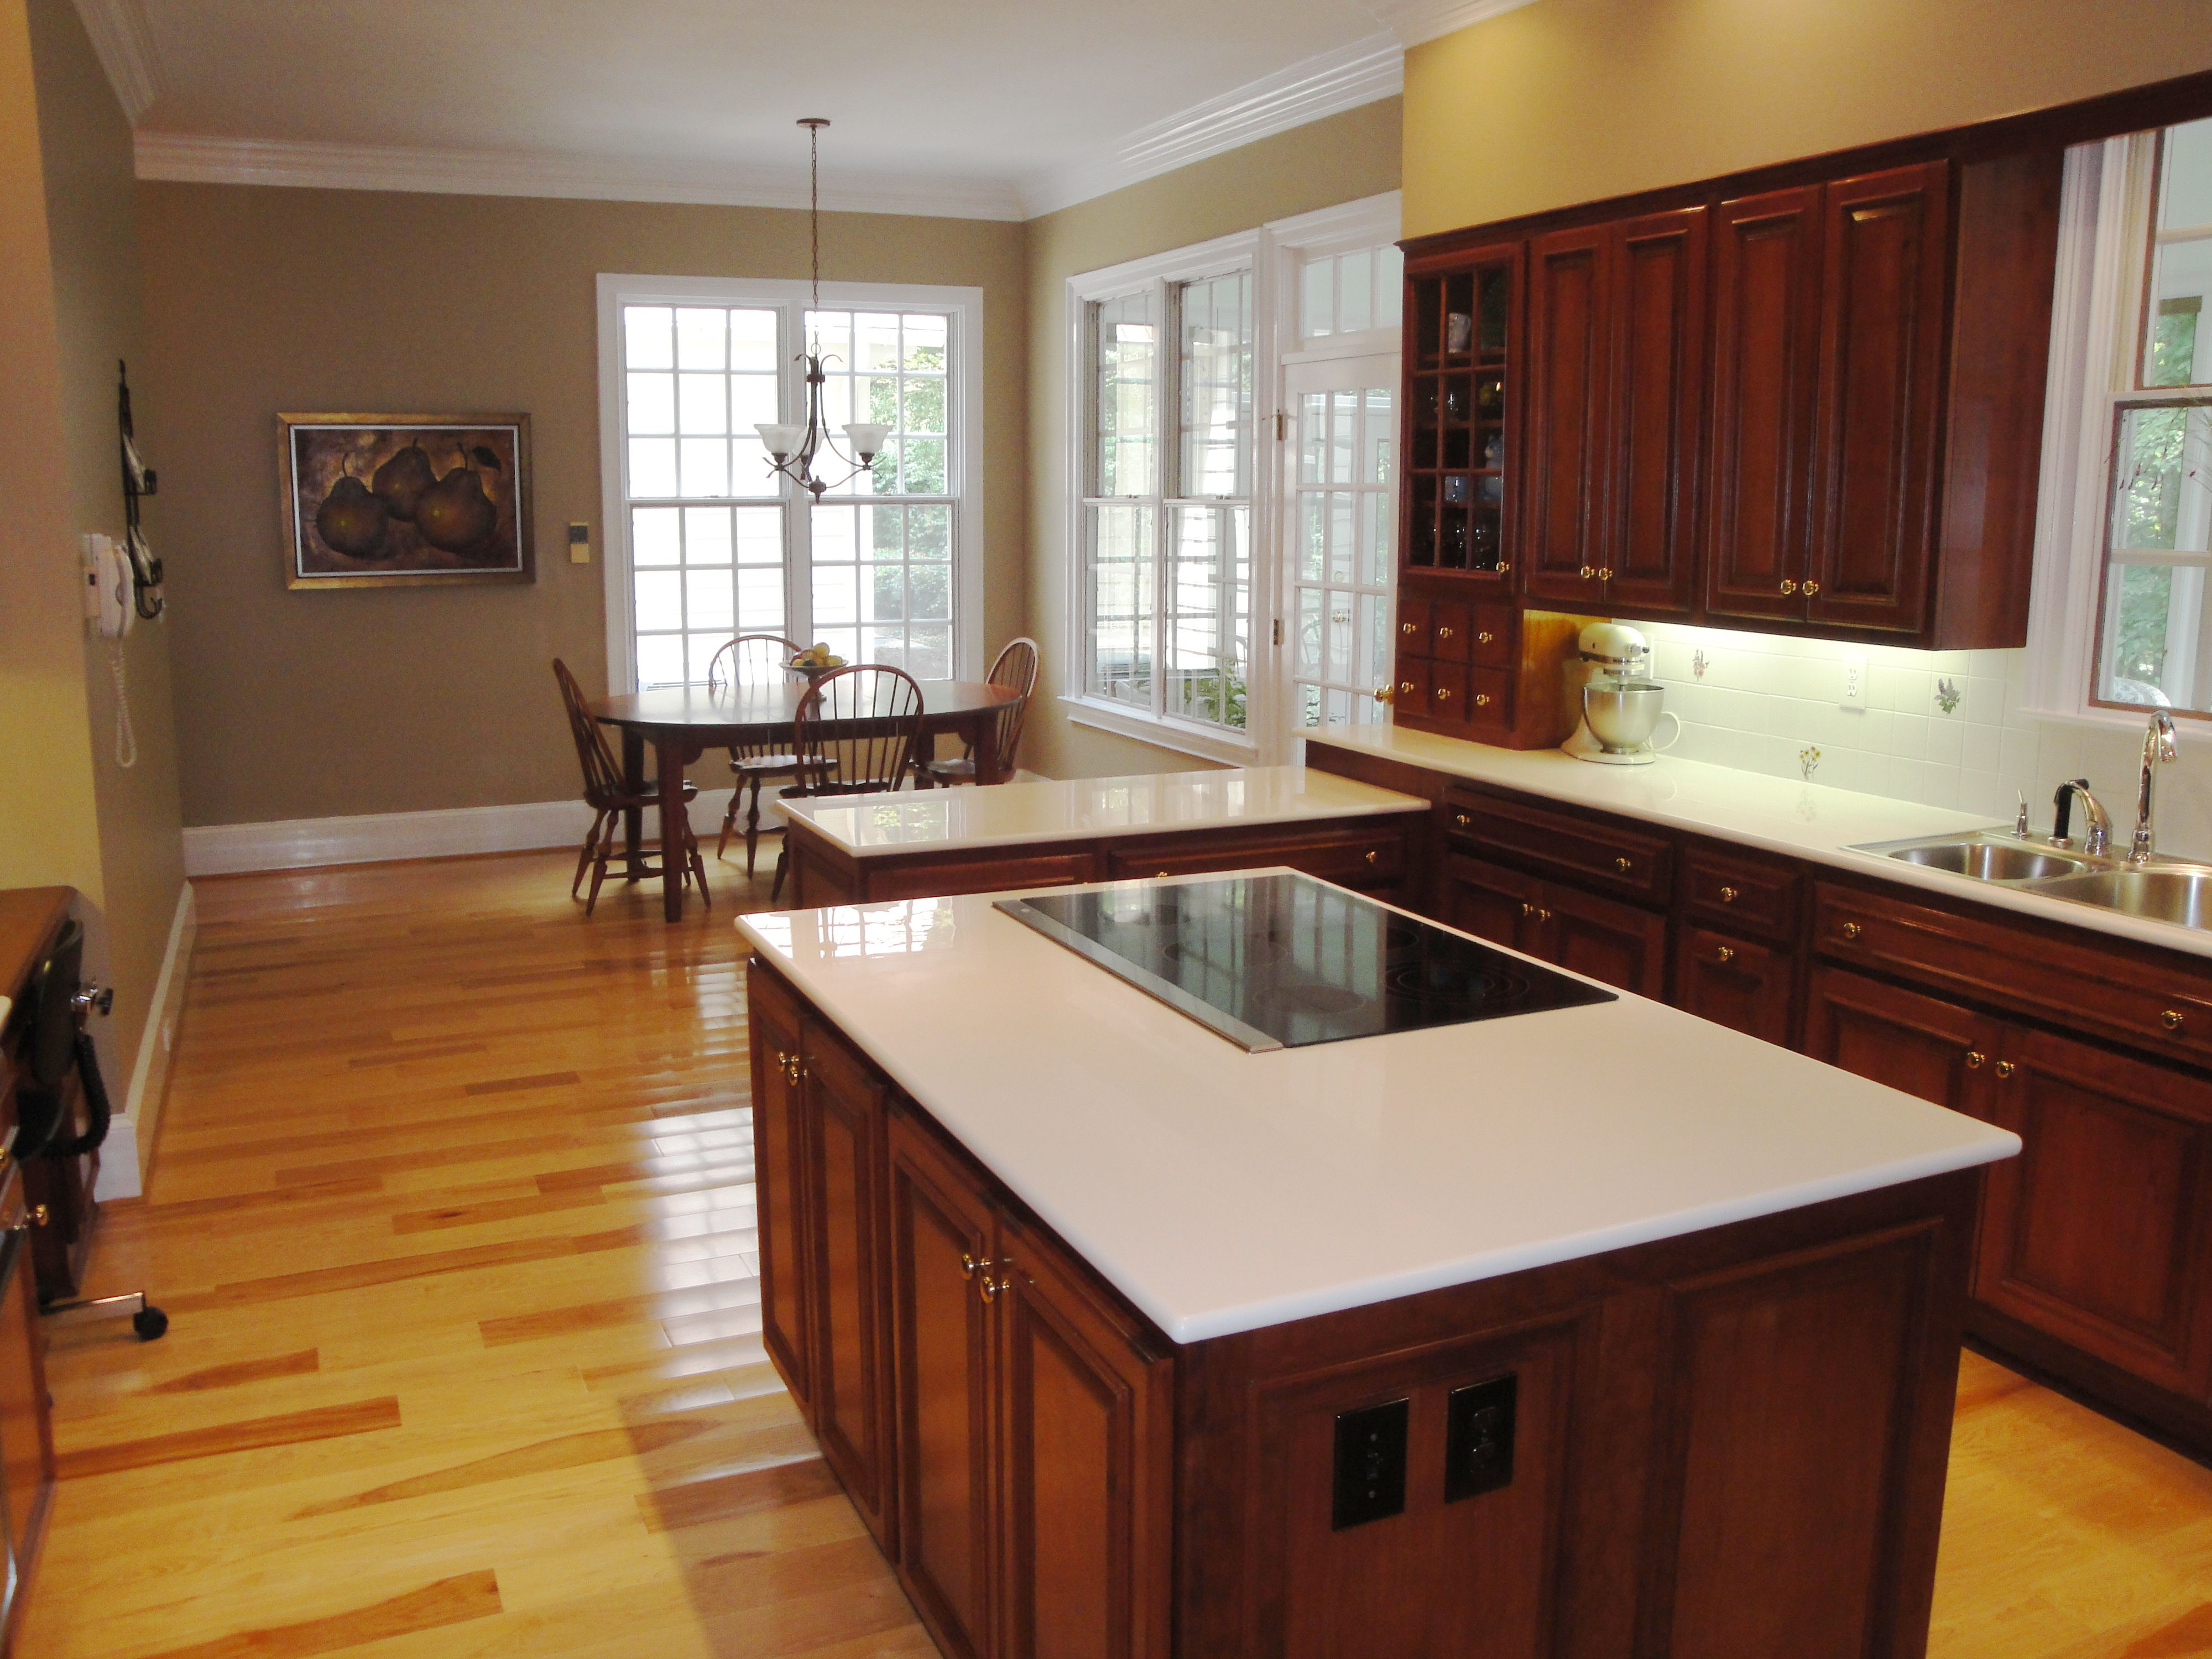 Hickory Floors, Cherry Cabinets Black Appliances And Light Floor (And